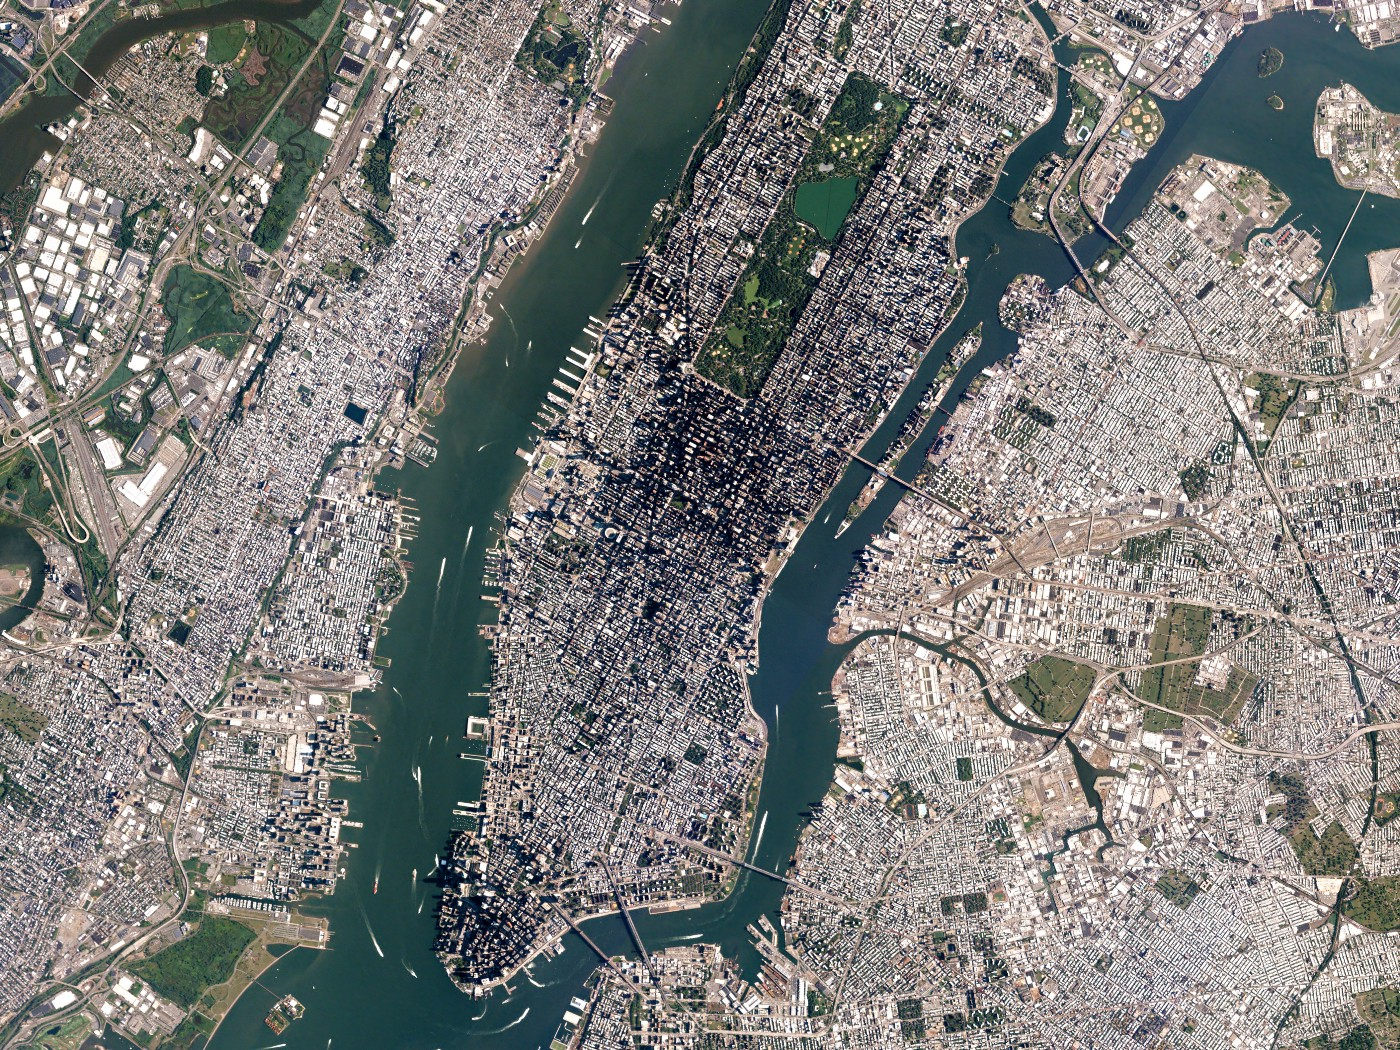 Satellite image for New York City taken from the PlanetScope satellite